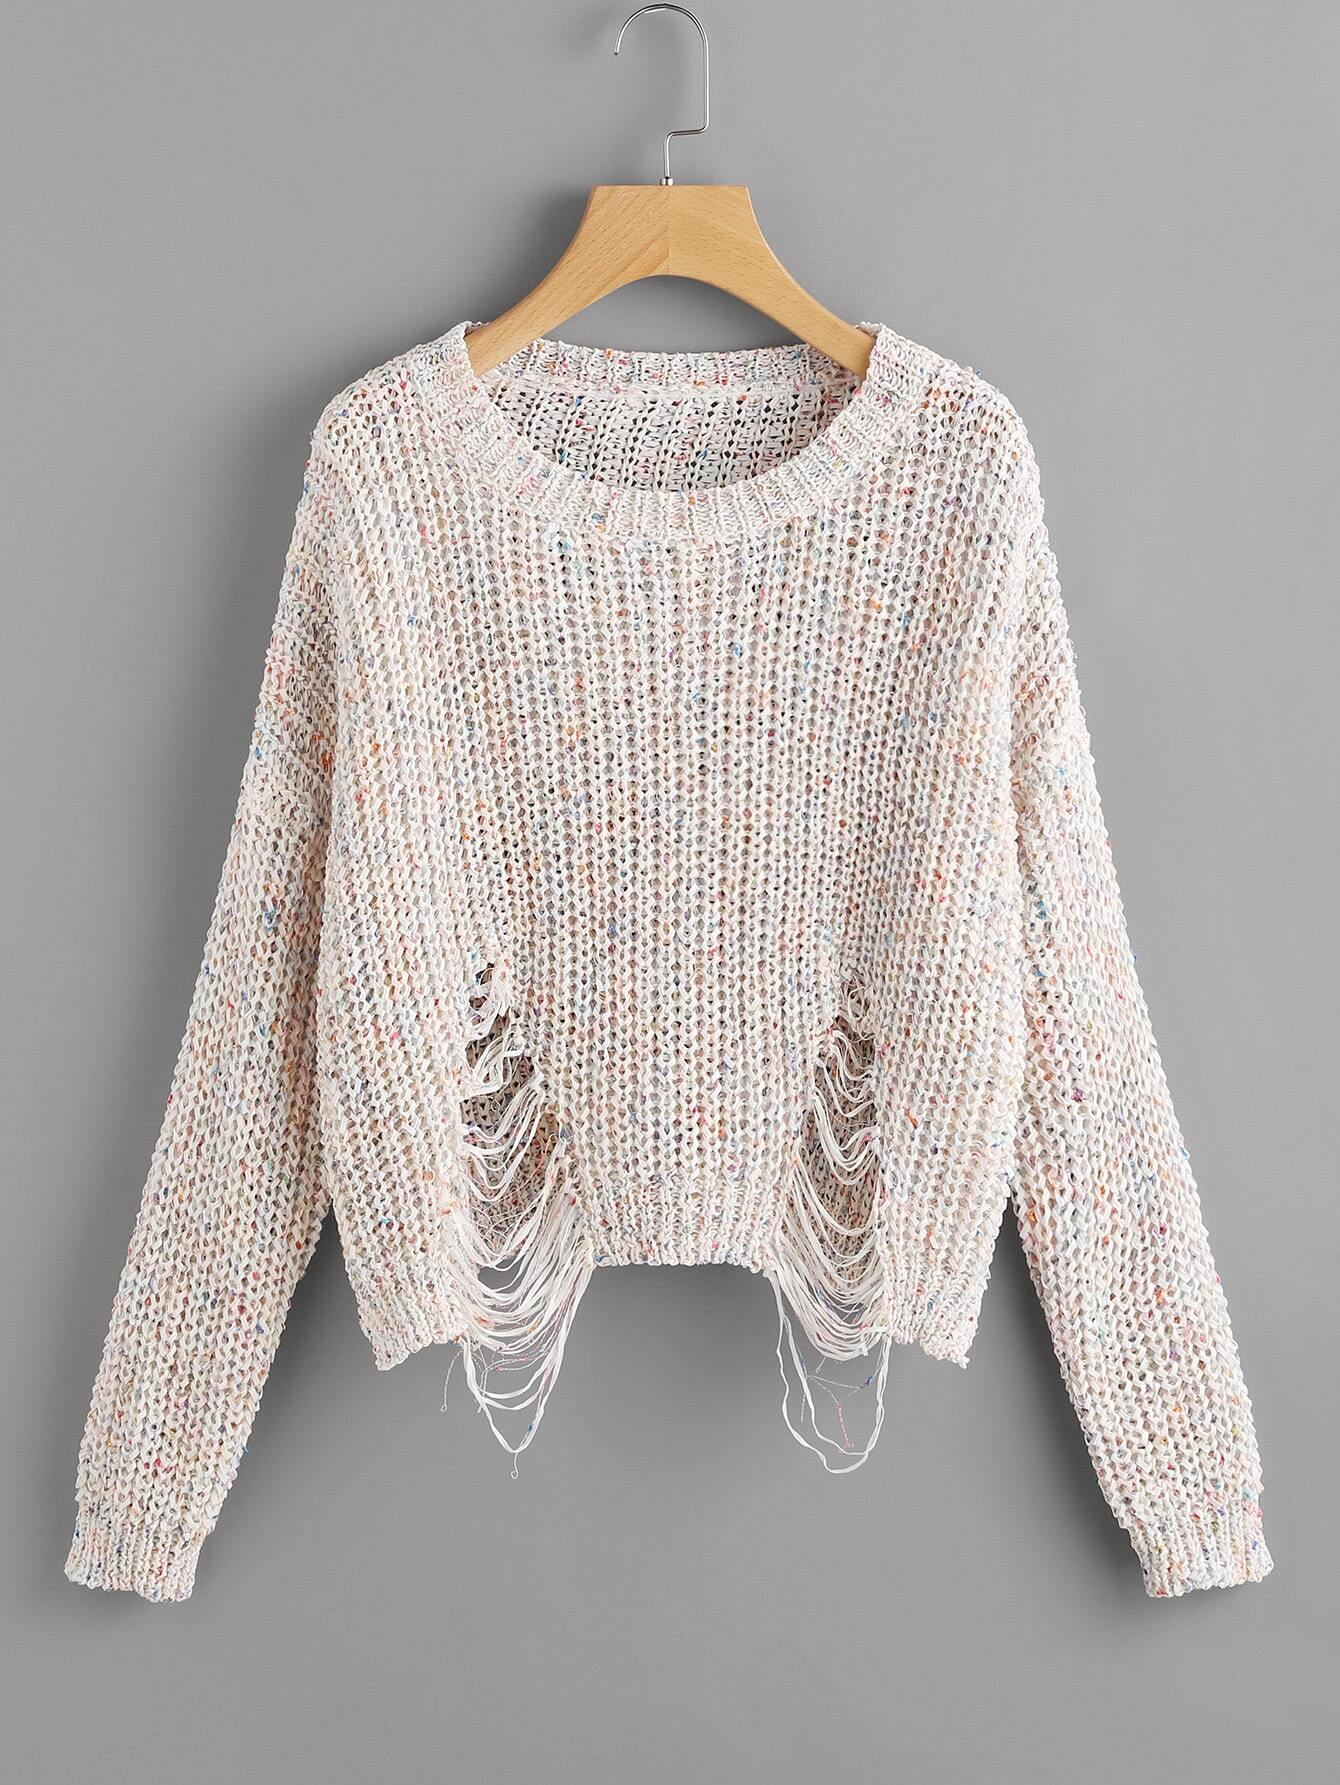 Marled Loose Knit Ripped Jumper sweater170628459